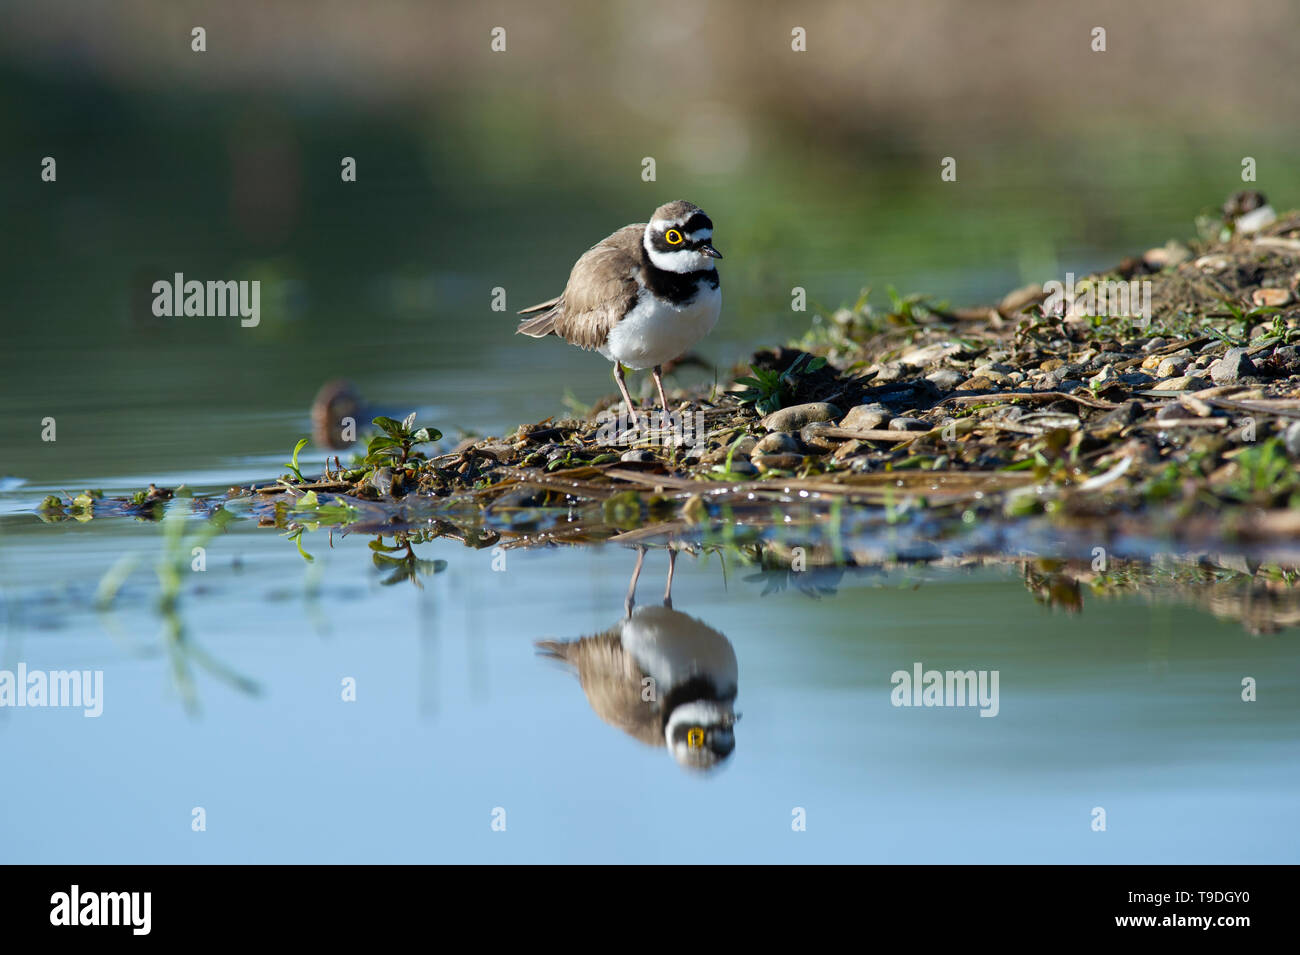 A Little Ringed Plover (Charadrius dubius) reflected in the water at Tophill Low Nature Reserve, East Yorkshire Stock Photo